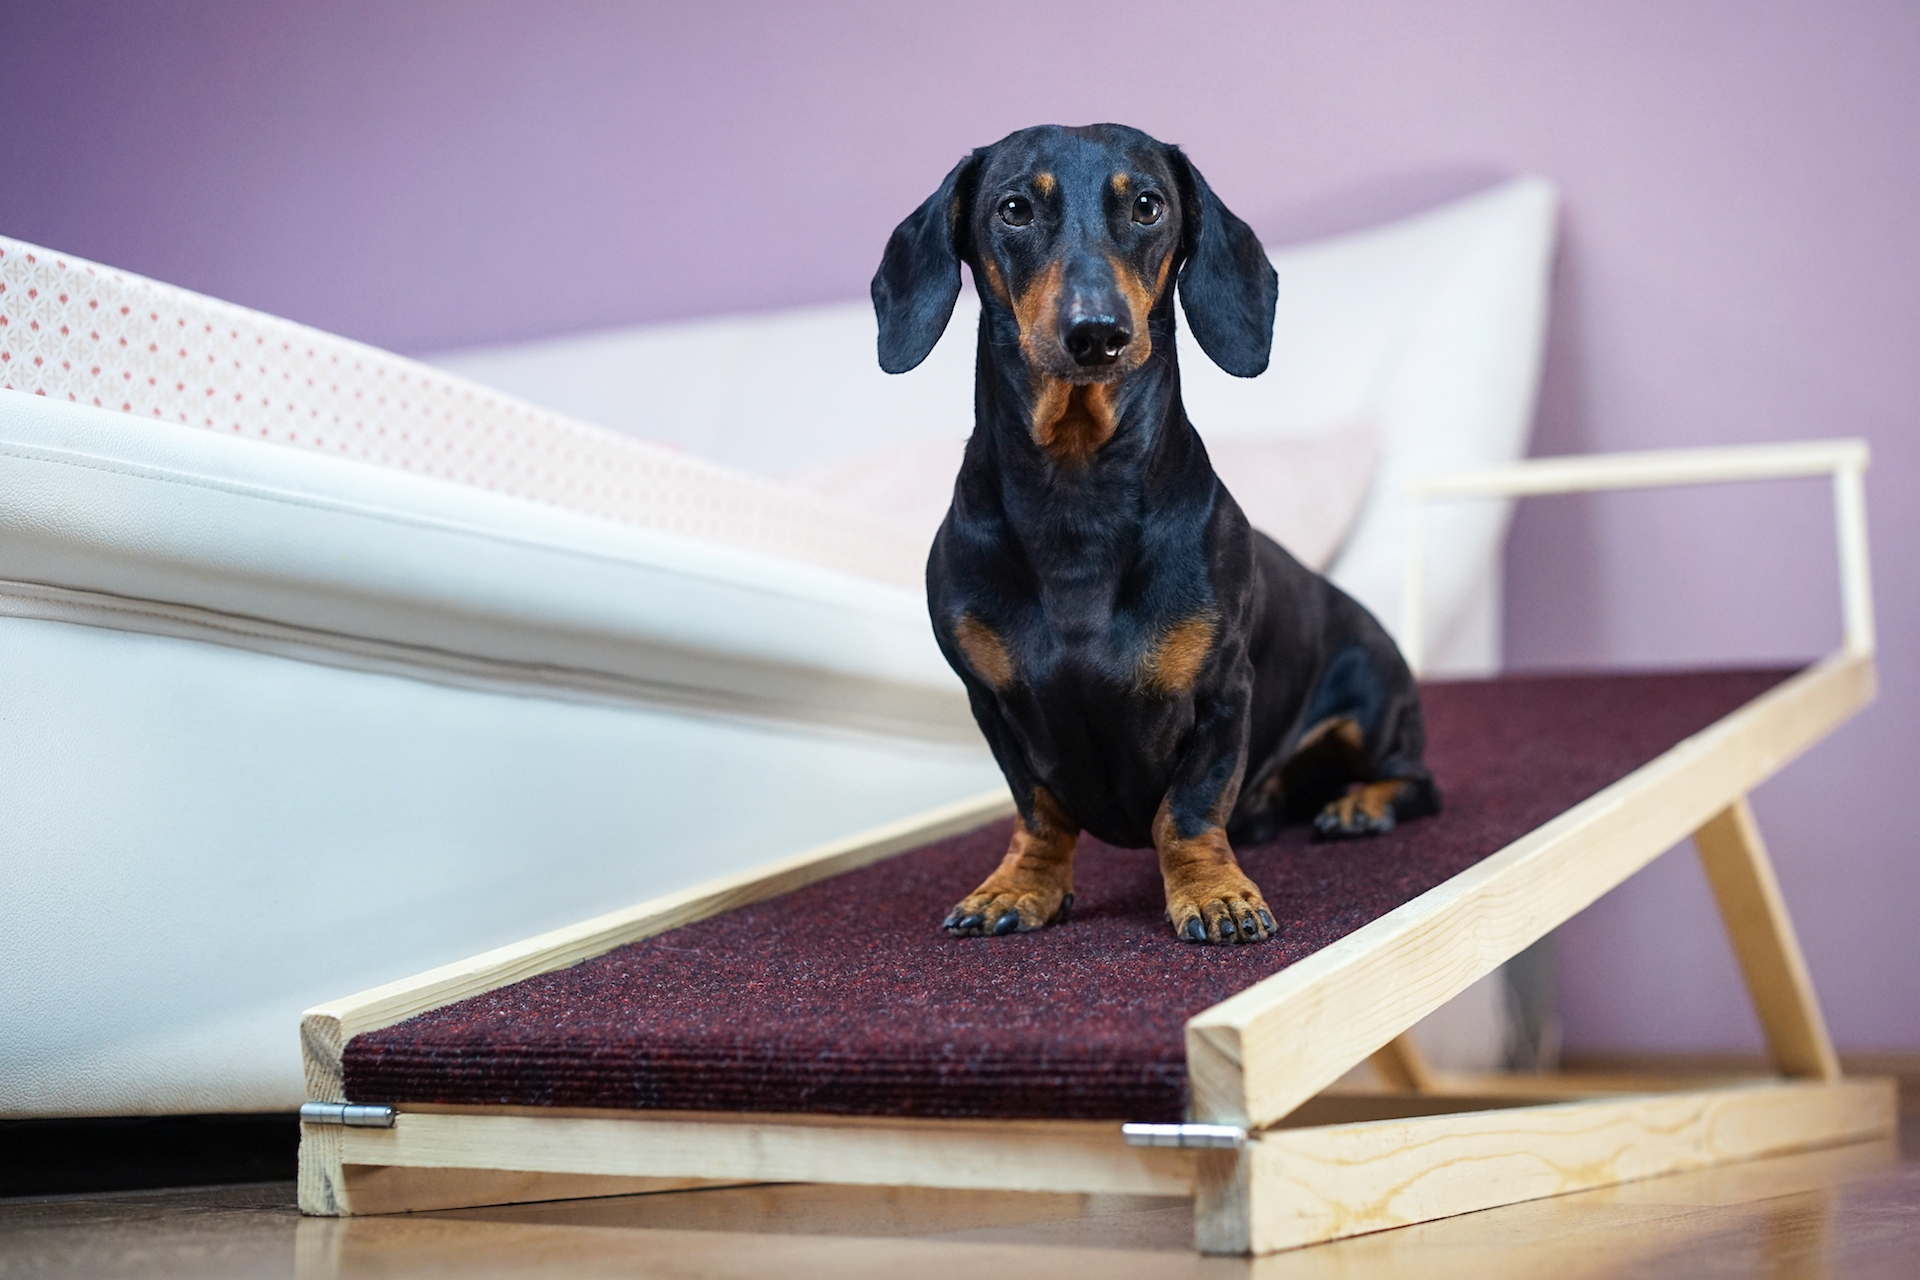 Black Dachshund on a pet ramp by a bed